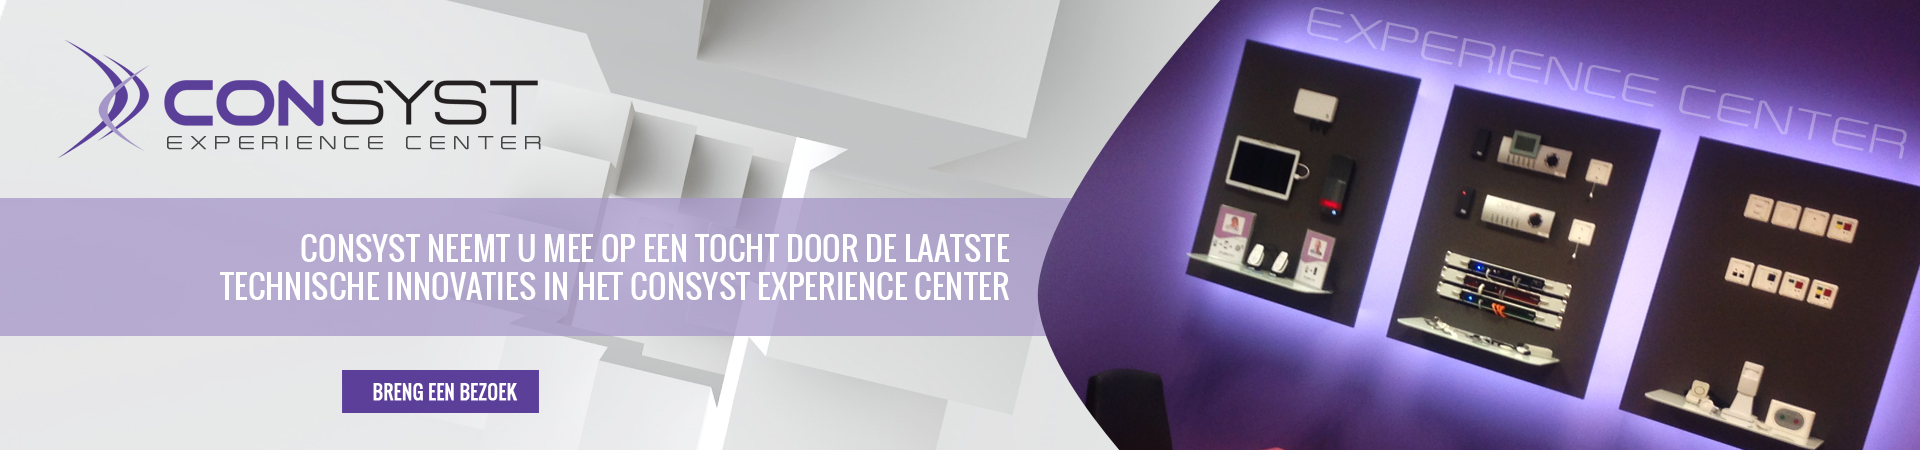 Consyst-Experience-Center